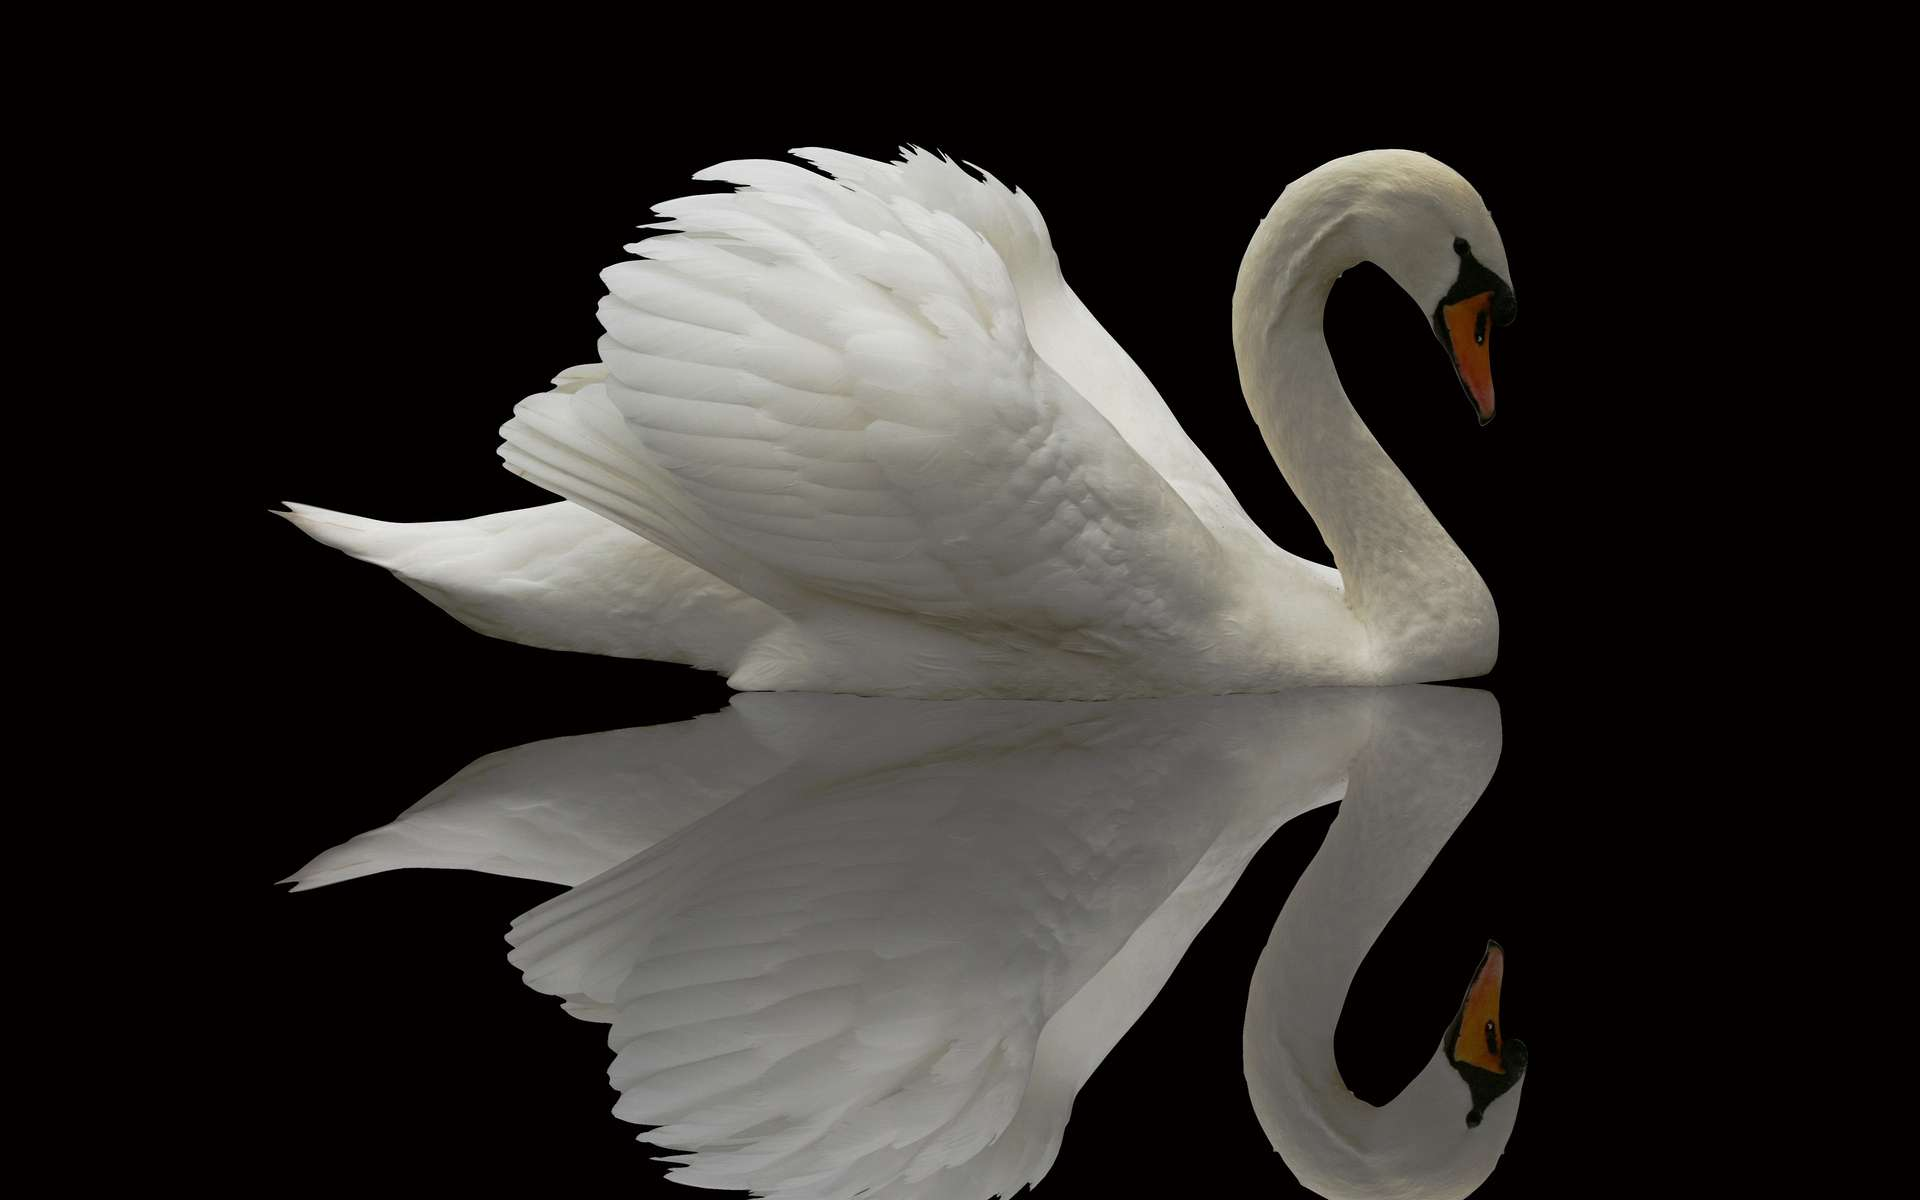 Swan HD Wallpaper, Background Images